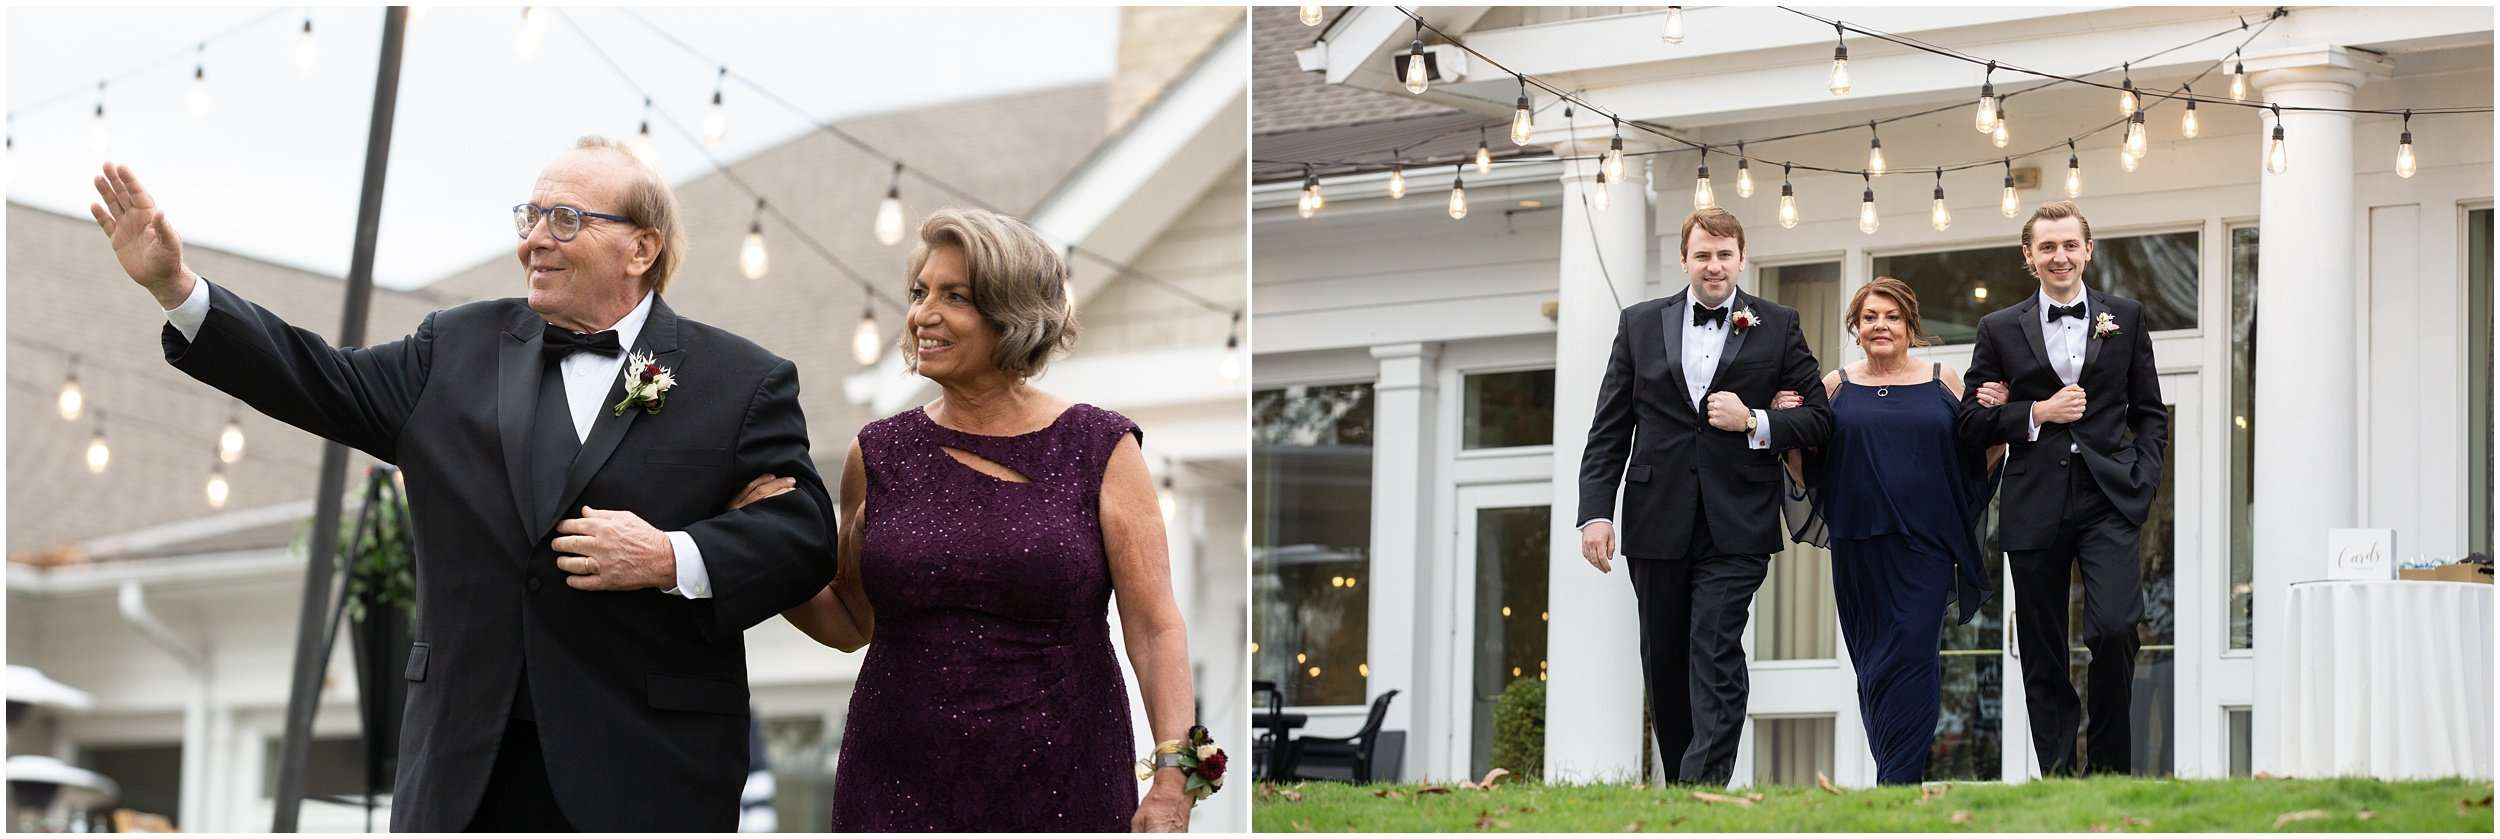 Fall Wedding at the Jefferson Golf and Country Club | Ohio Wedding Photography 116